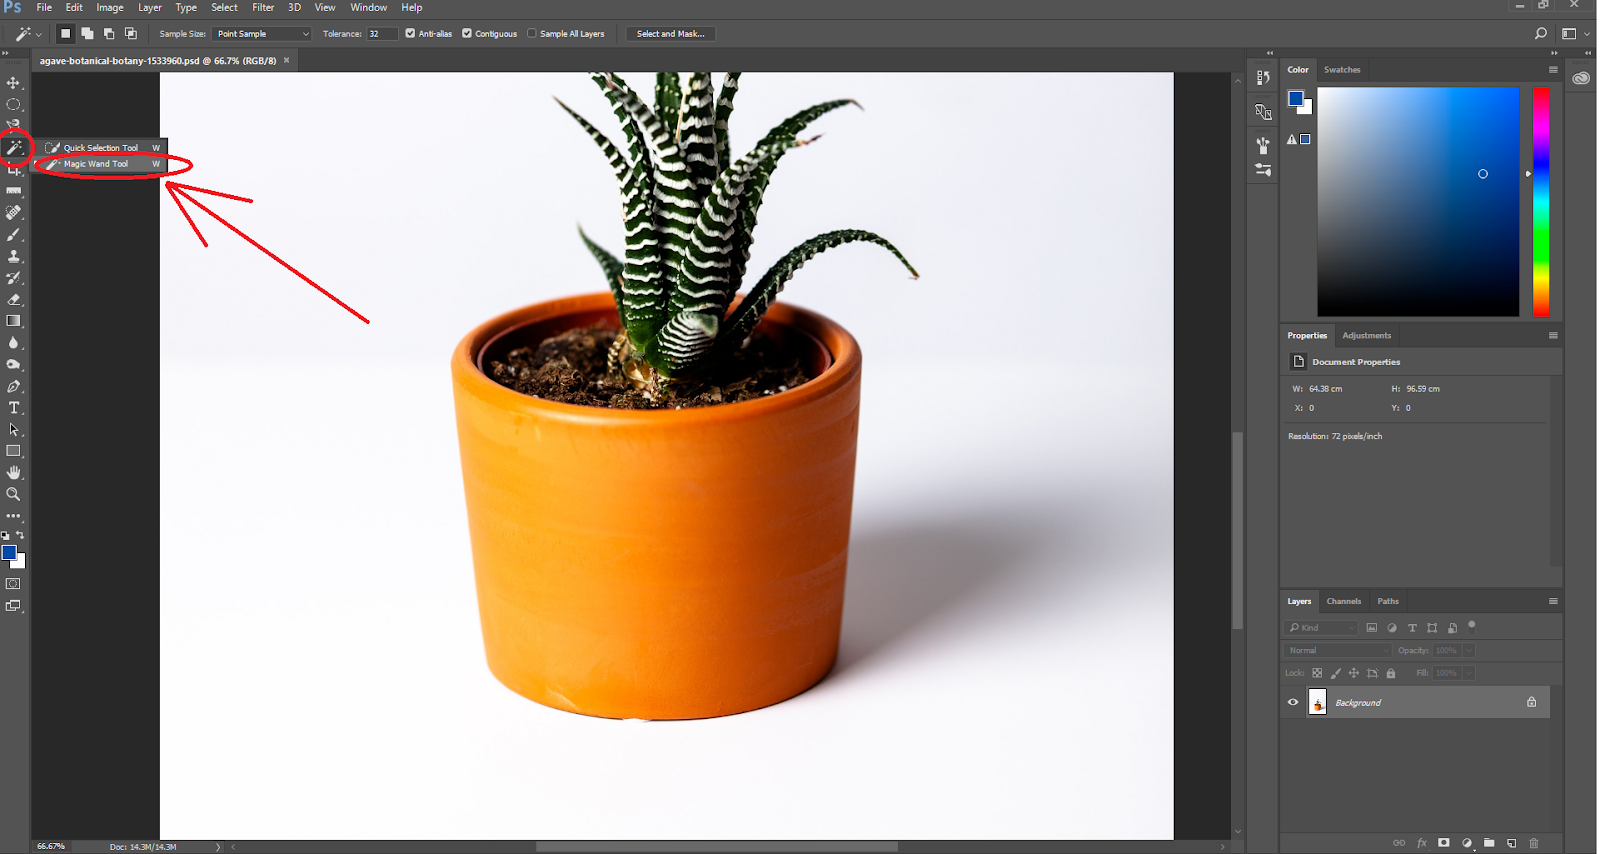 How to Make an Image Transparent in Photoshop or Luminar